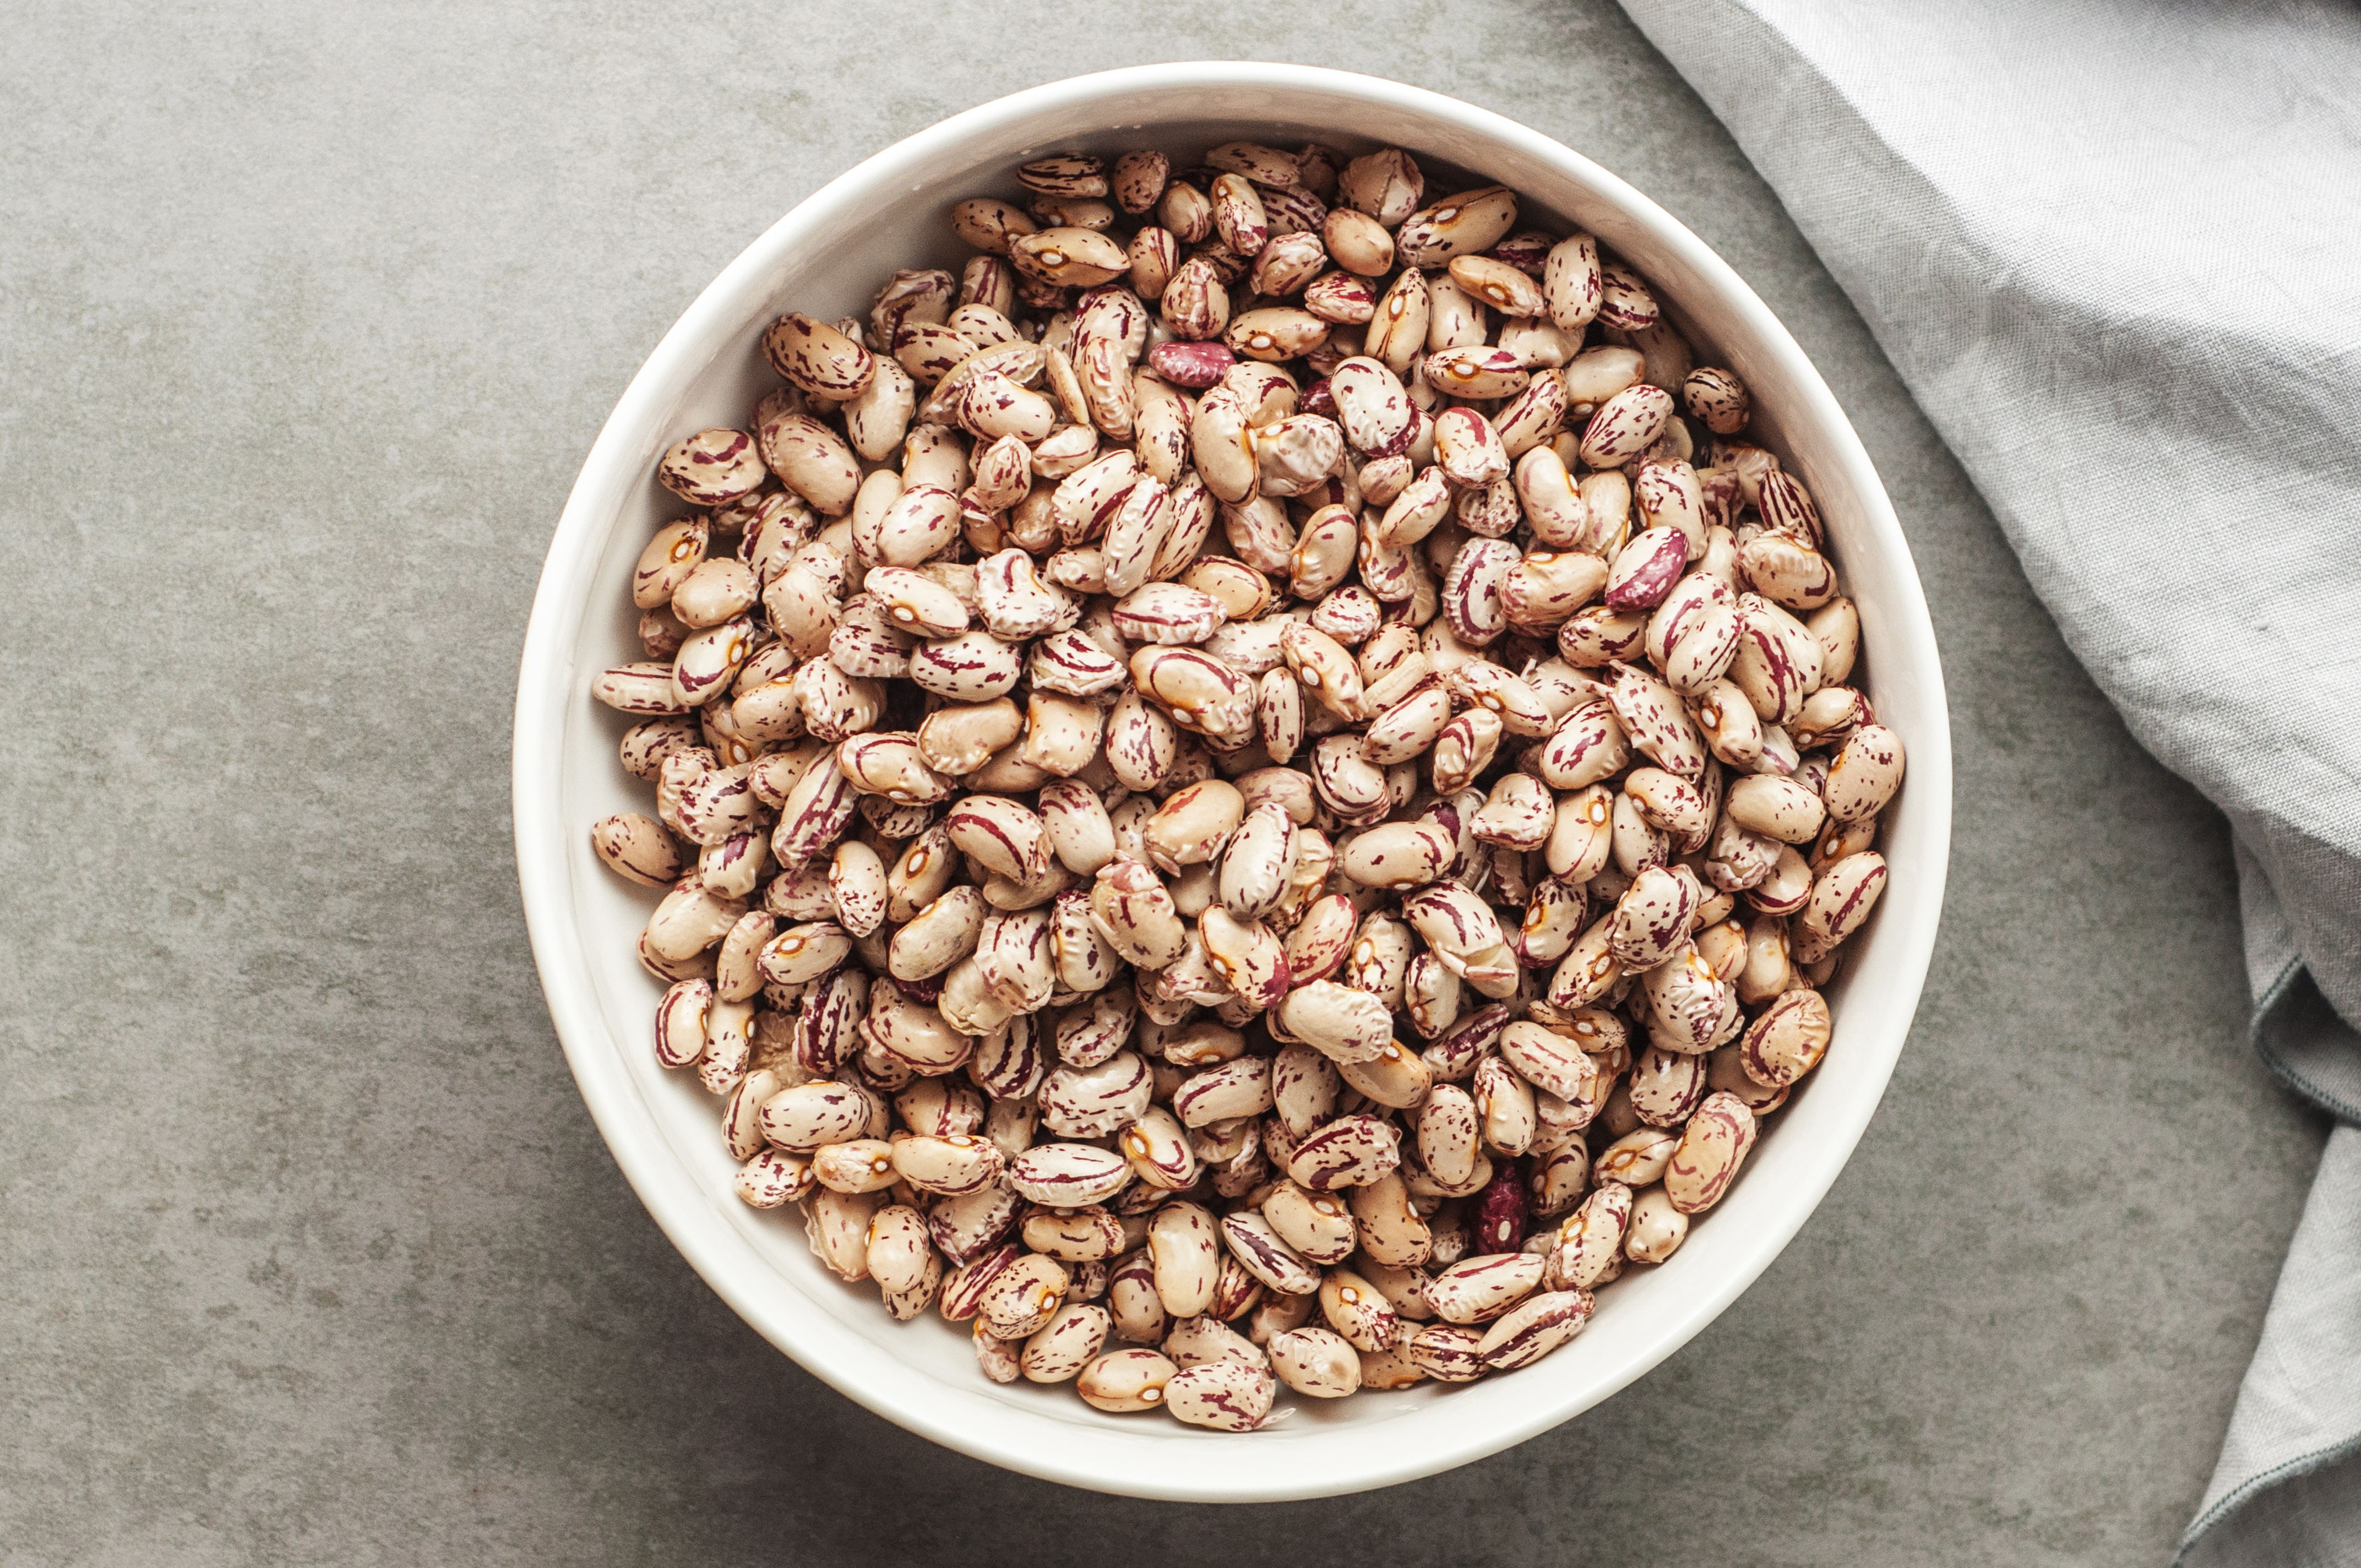 Rinsed, drained beans in a bowl